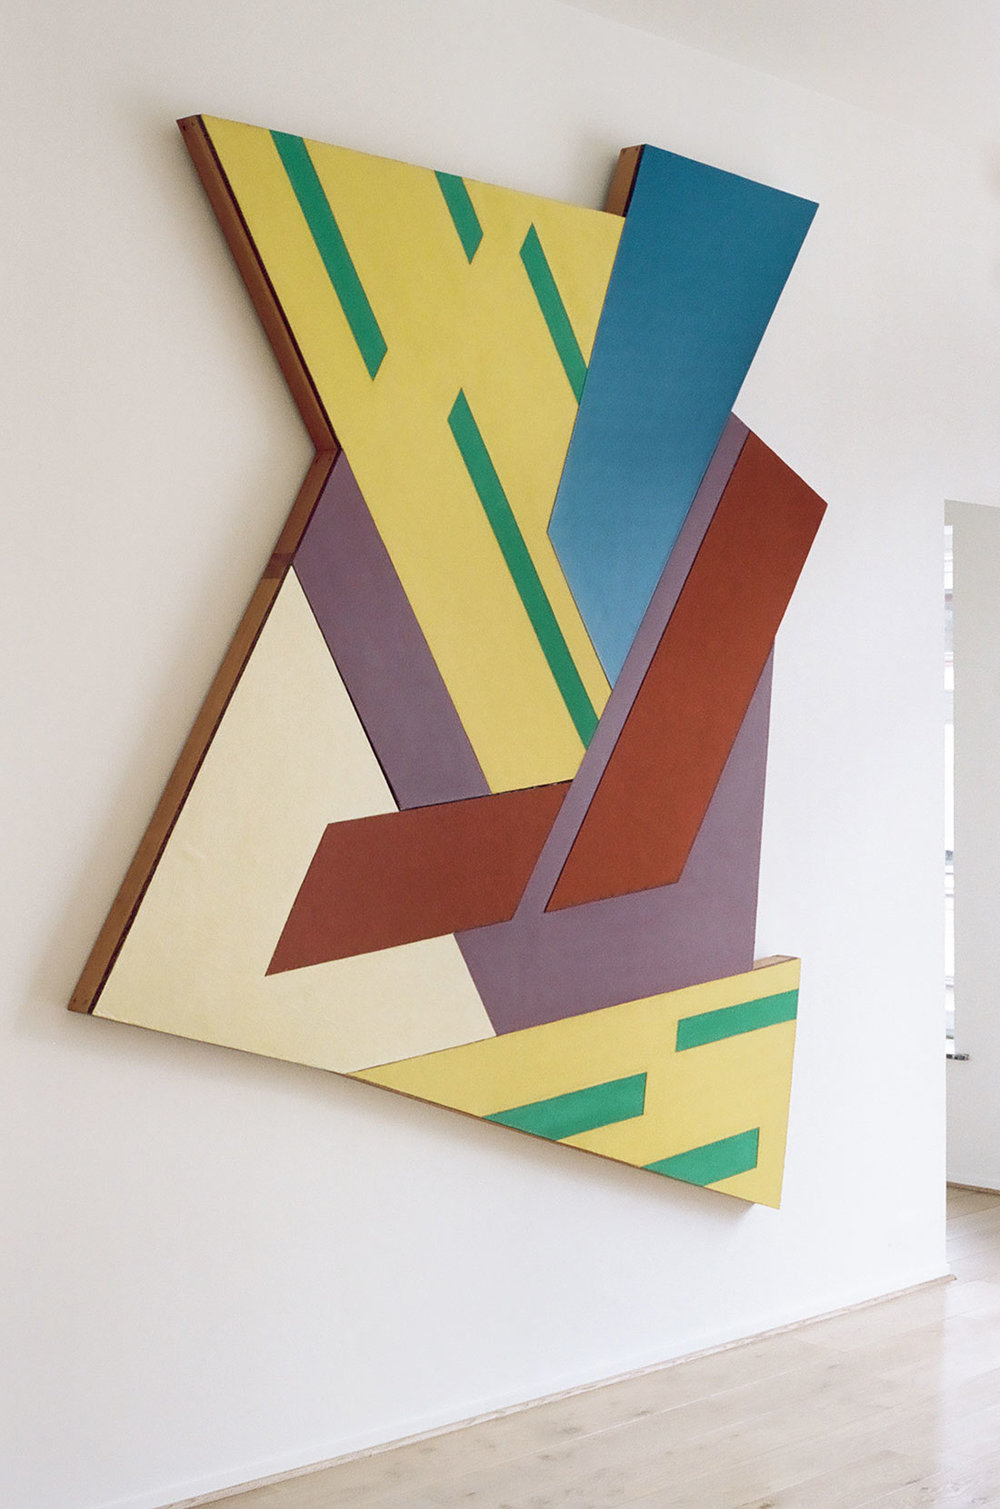 Frank Stella \ Felsztyn IV, 1971 at home.